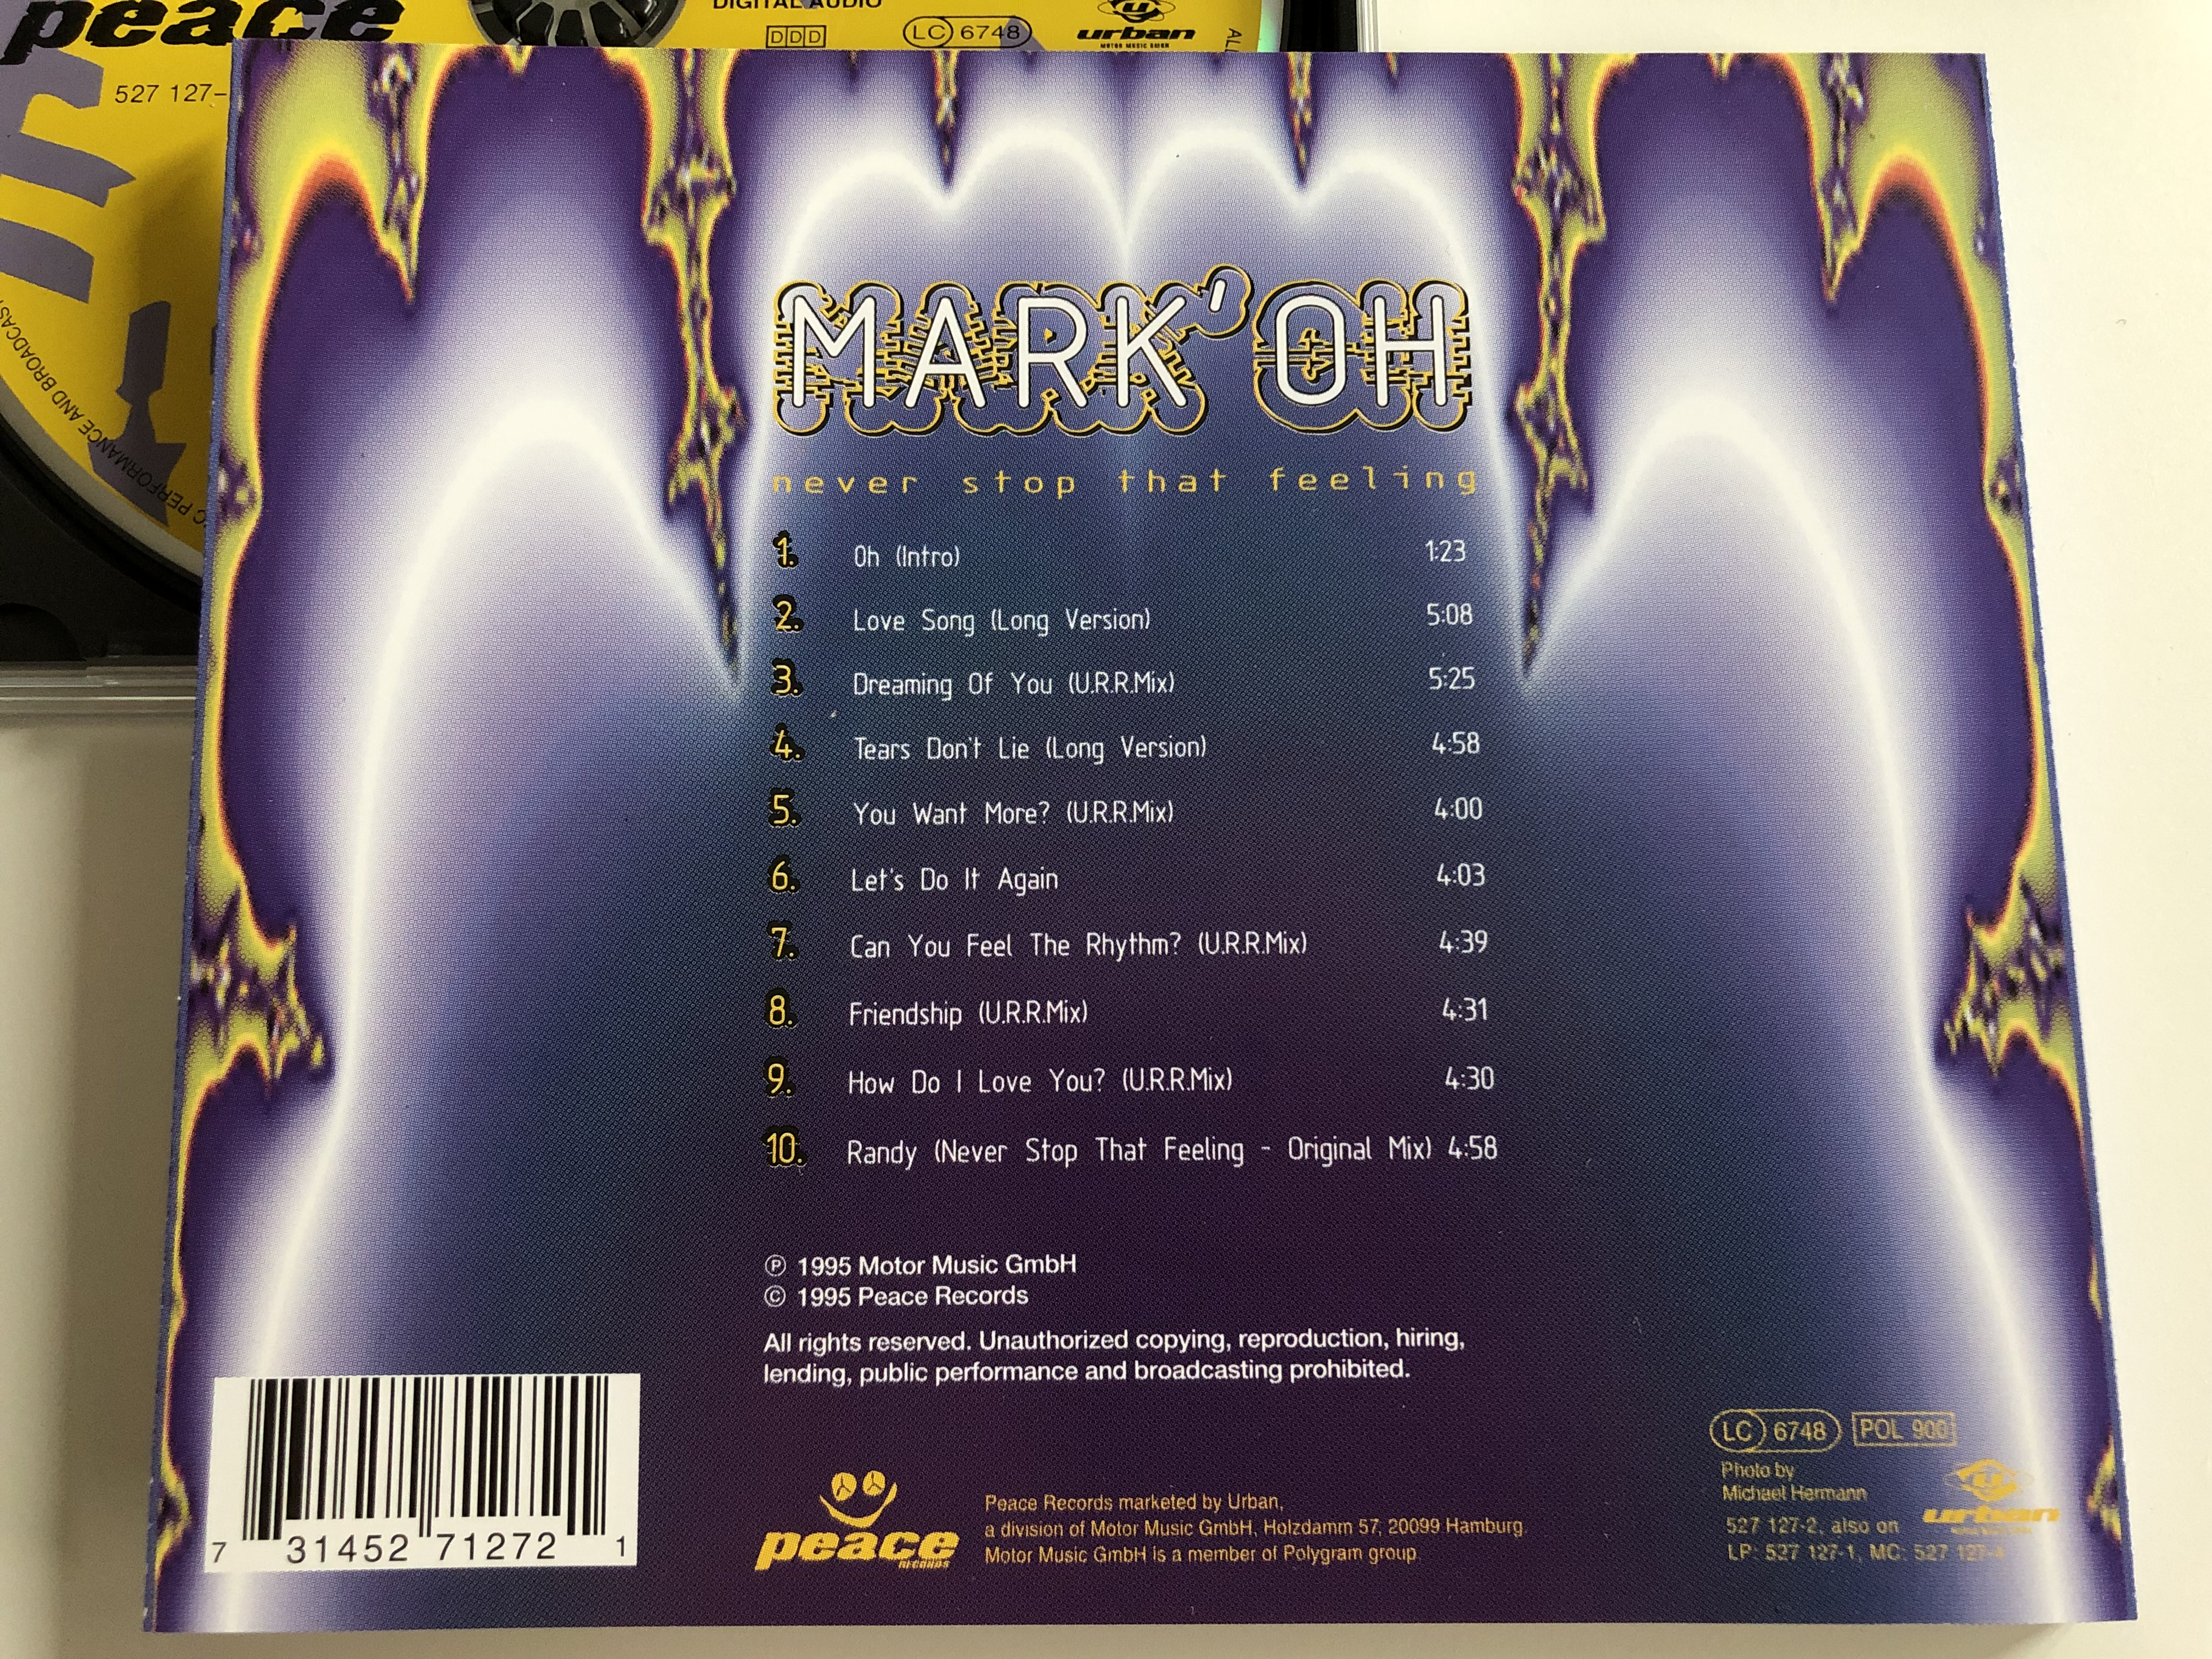 mark-oh-never-stop-that-feeling-peace-records-audio-cd-1995-527-127-2-4-.jpg